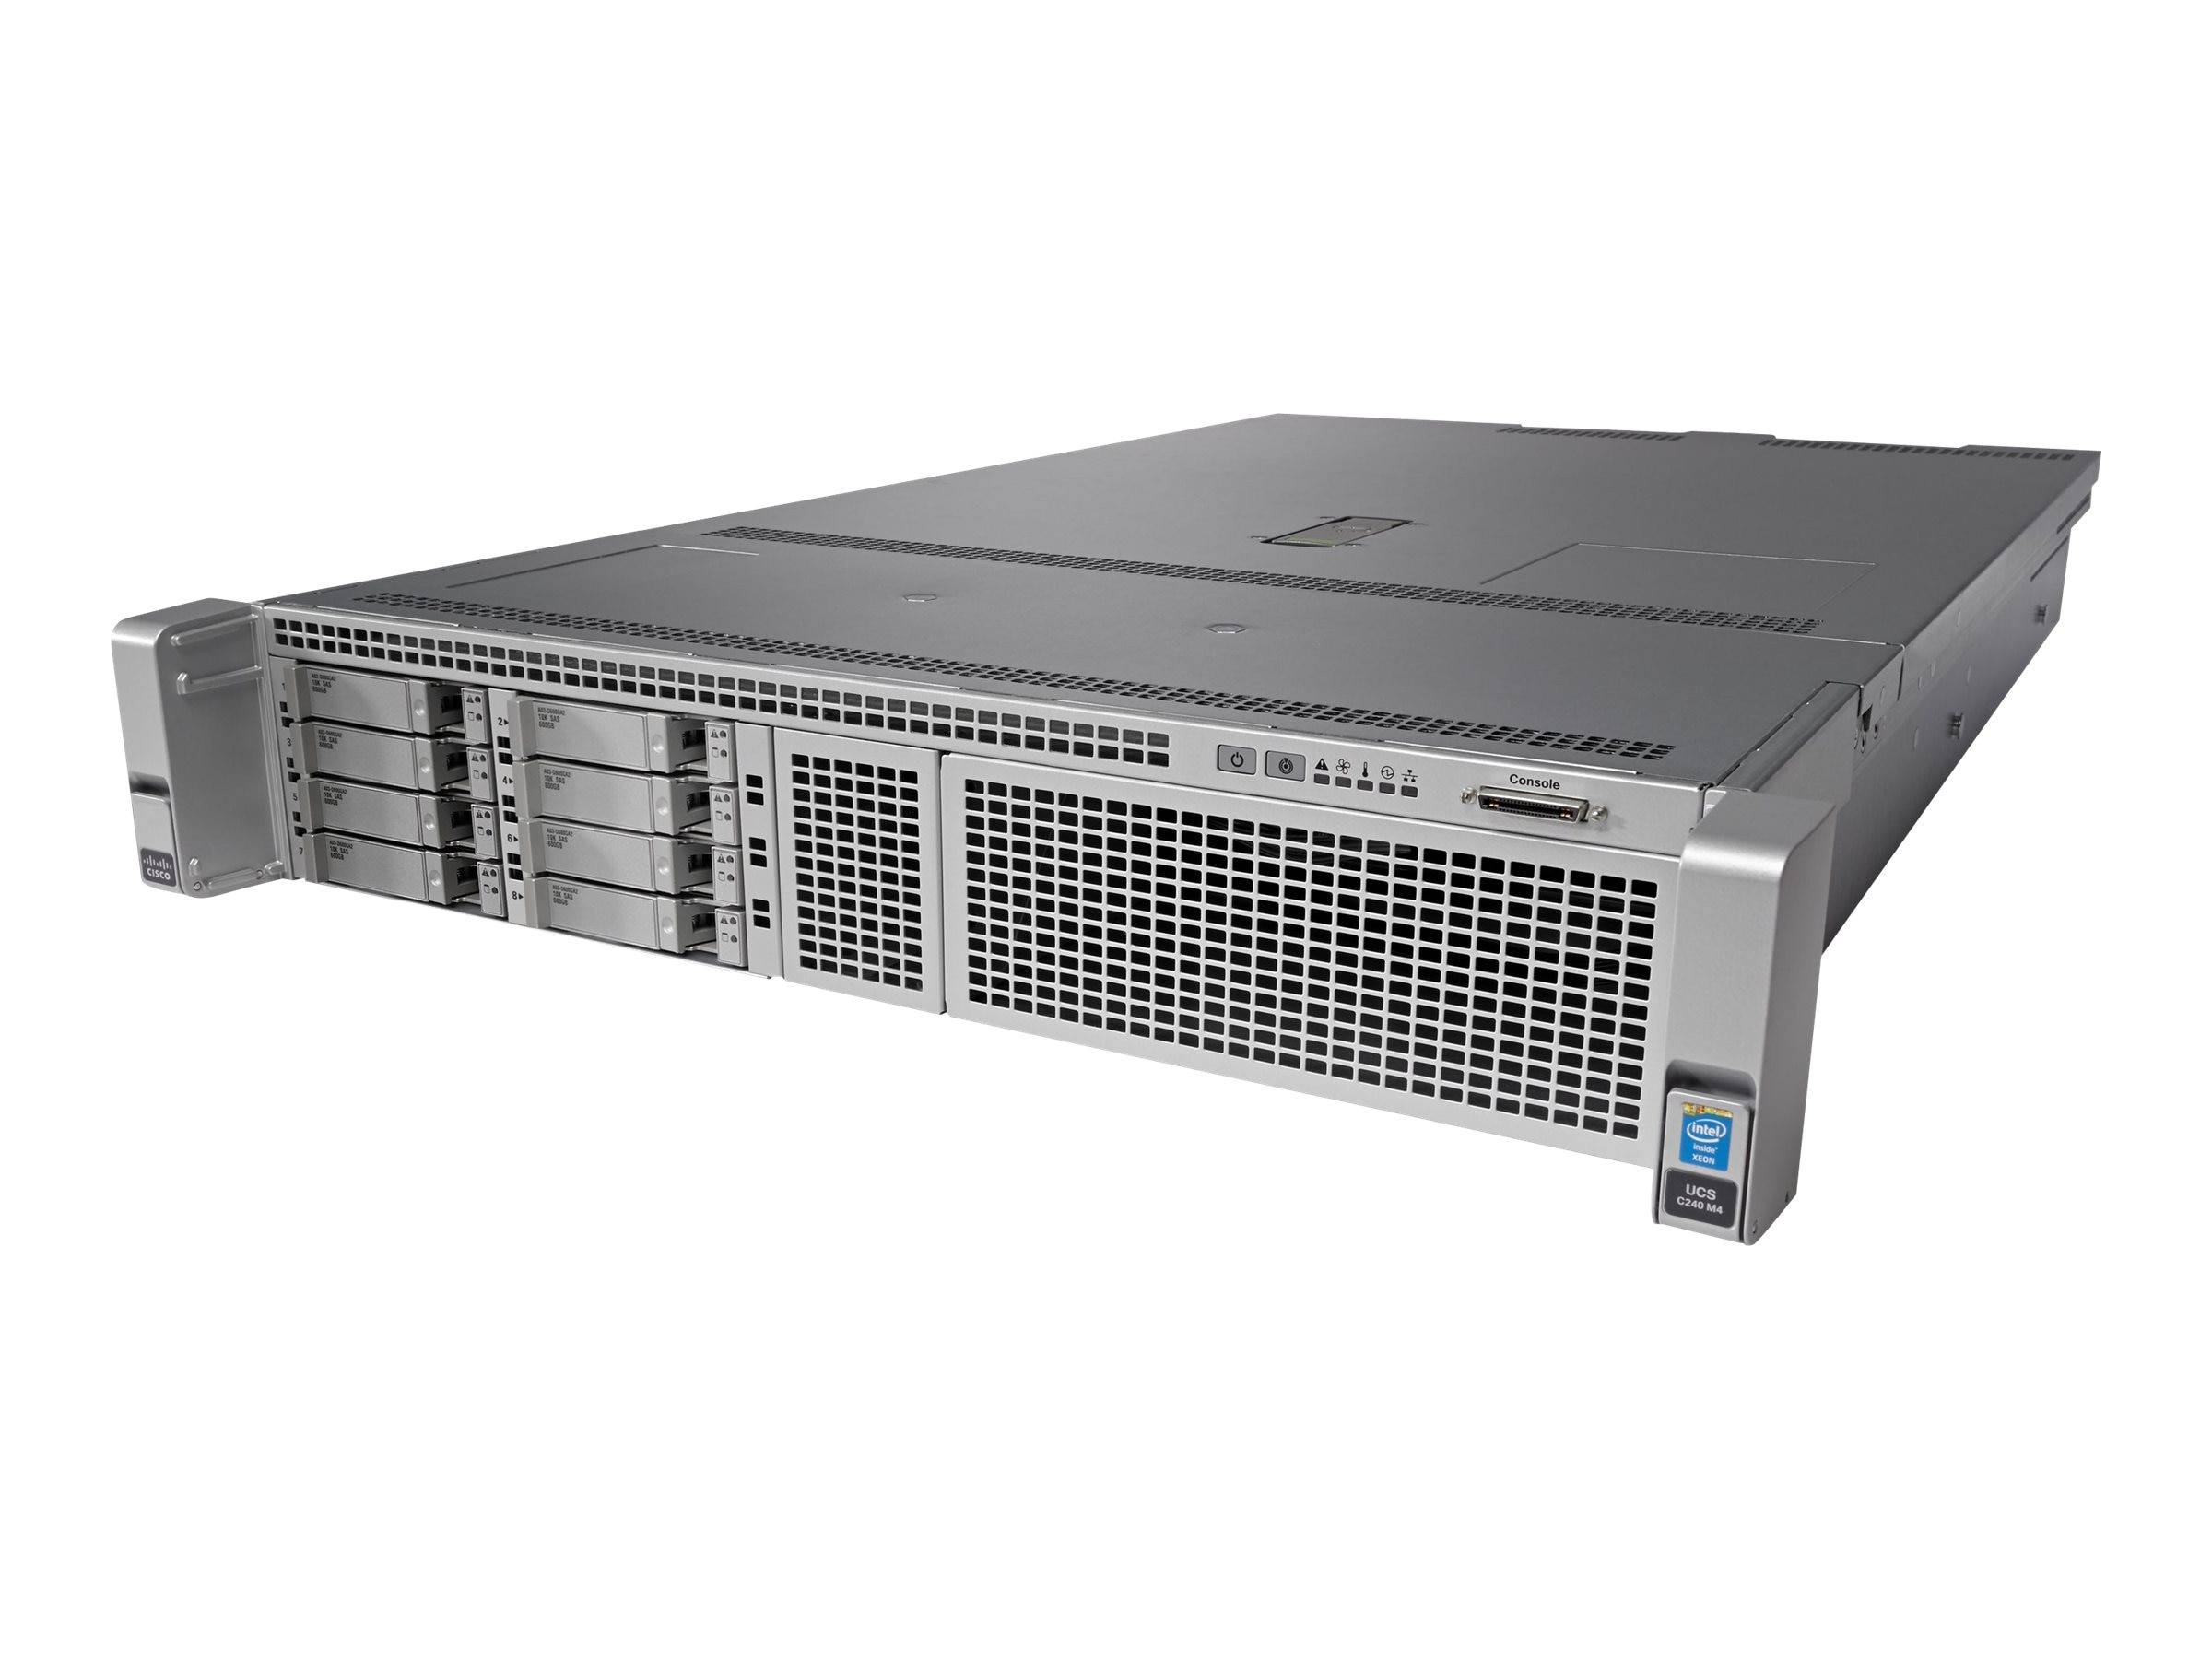 Cisco UCS C240 M4SX (2x)Xeon E5-2660 v3 32GB MRAID